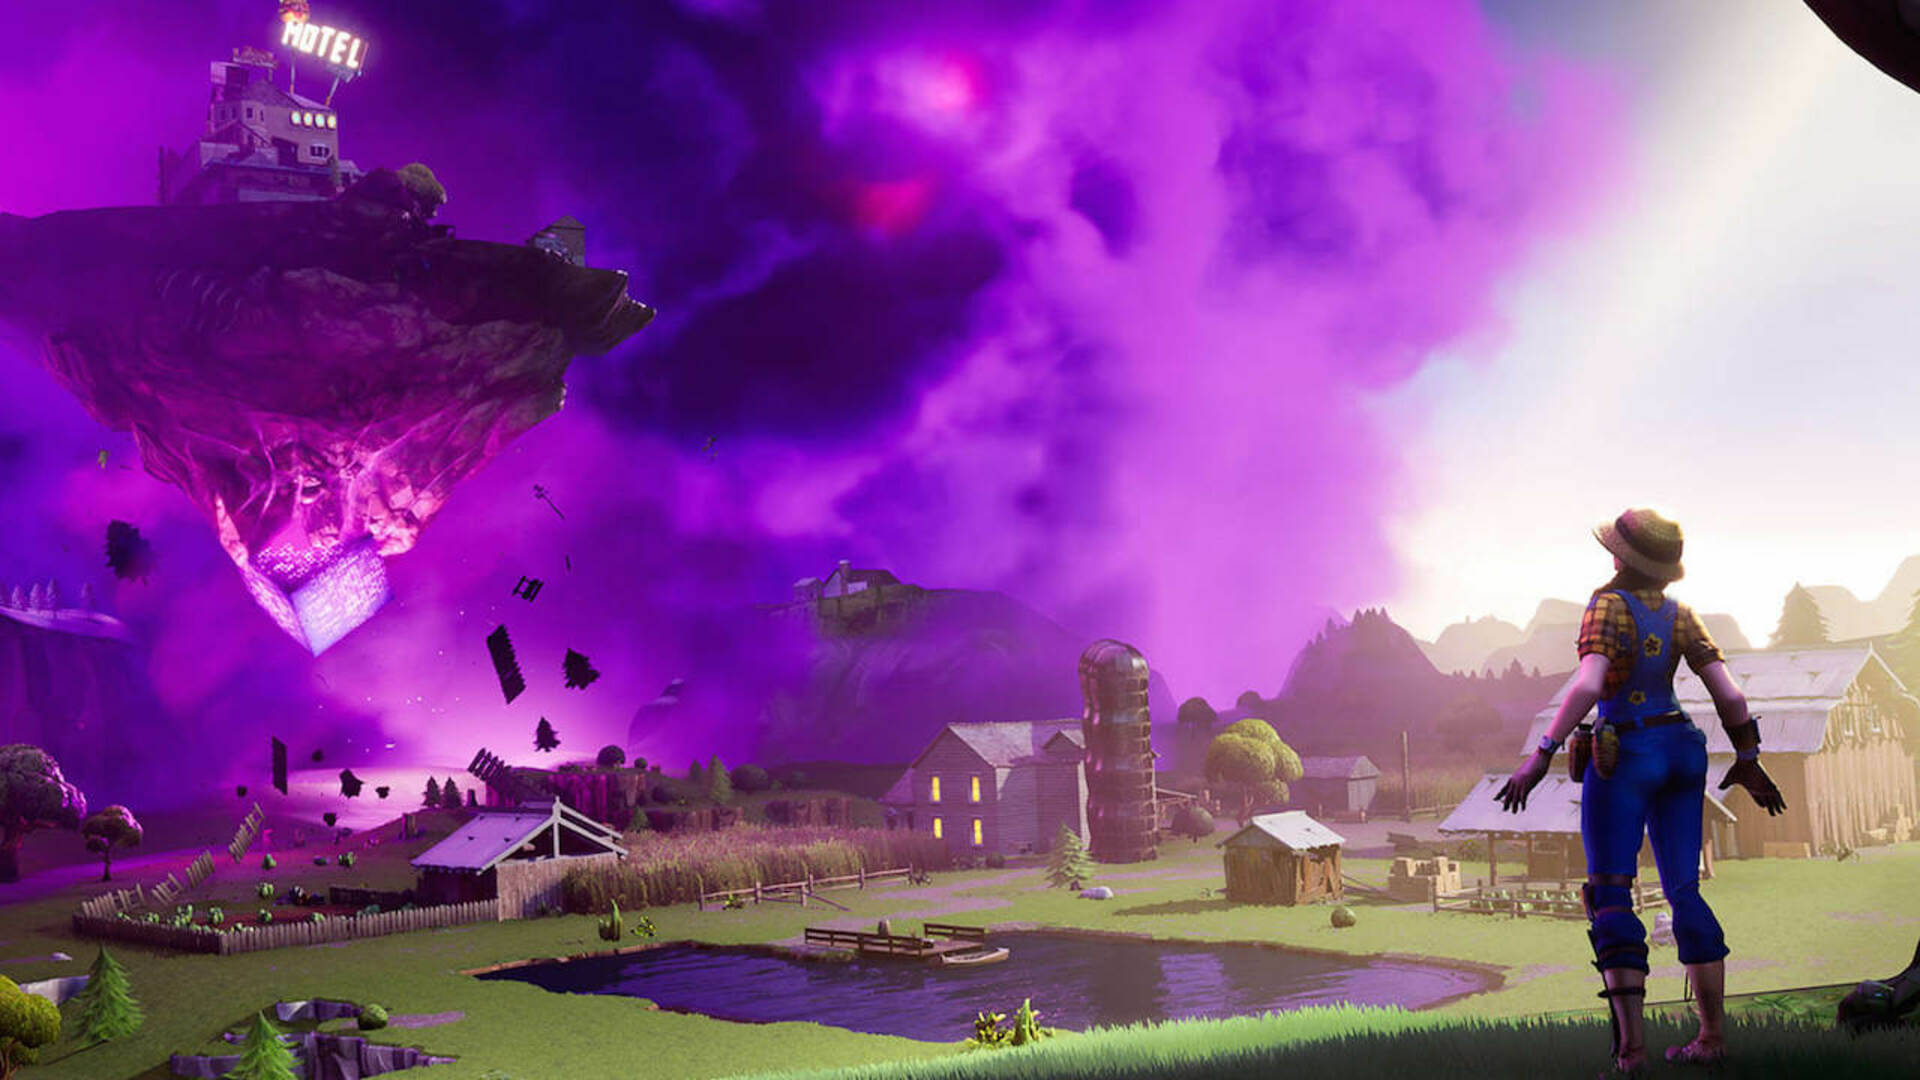 New Fortnite Patch 10.20 Adds a Powerful New Trap and Brings Back the Floating Island